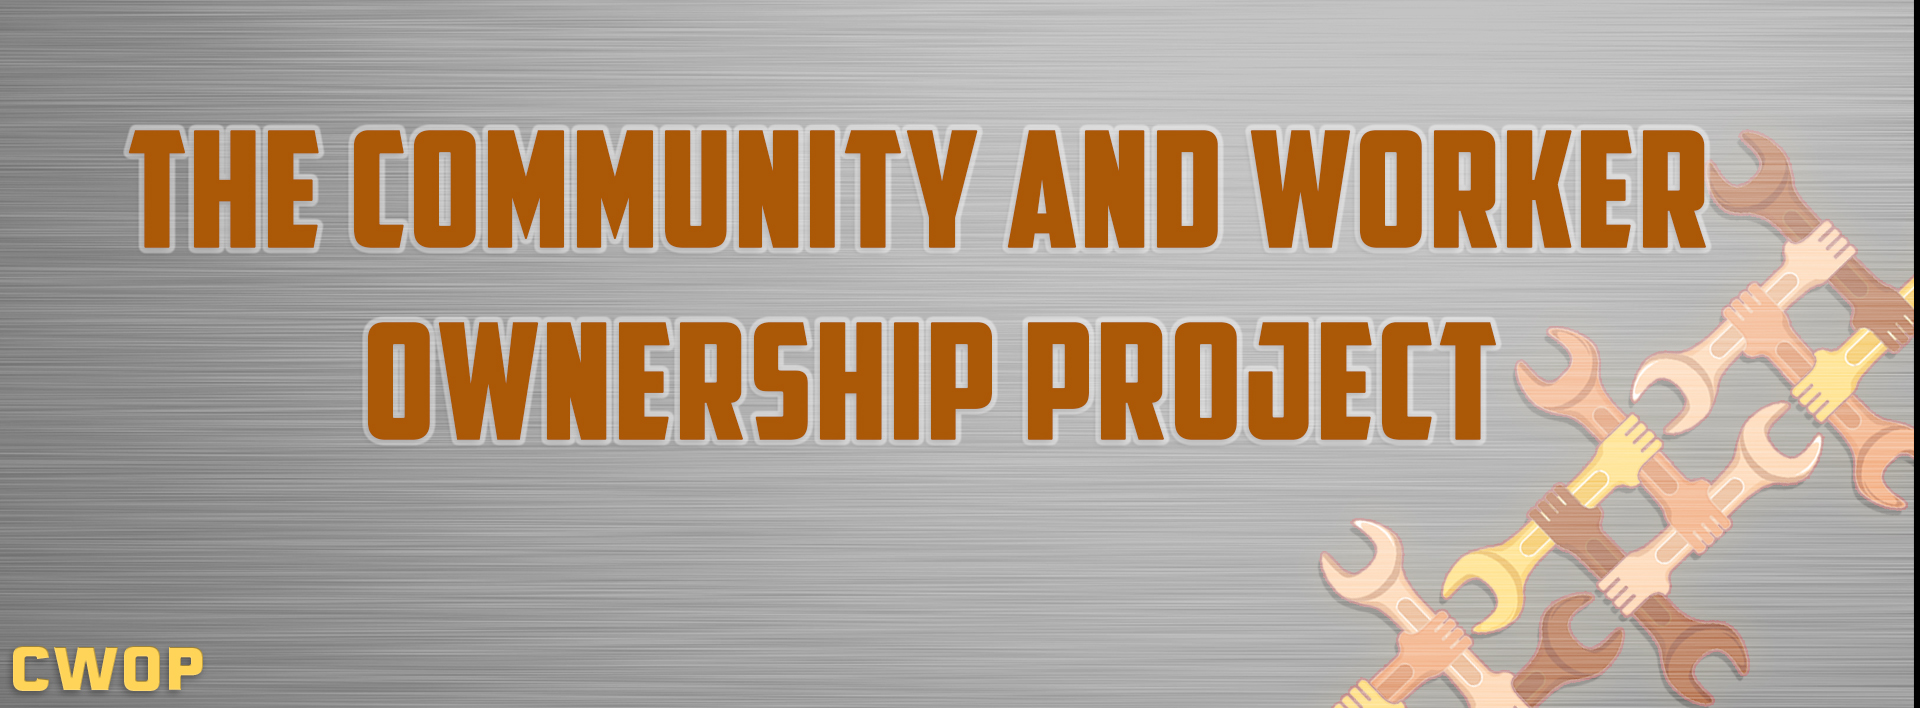 Community and Worker Ownership Project page